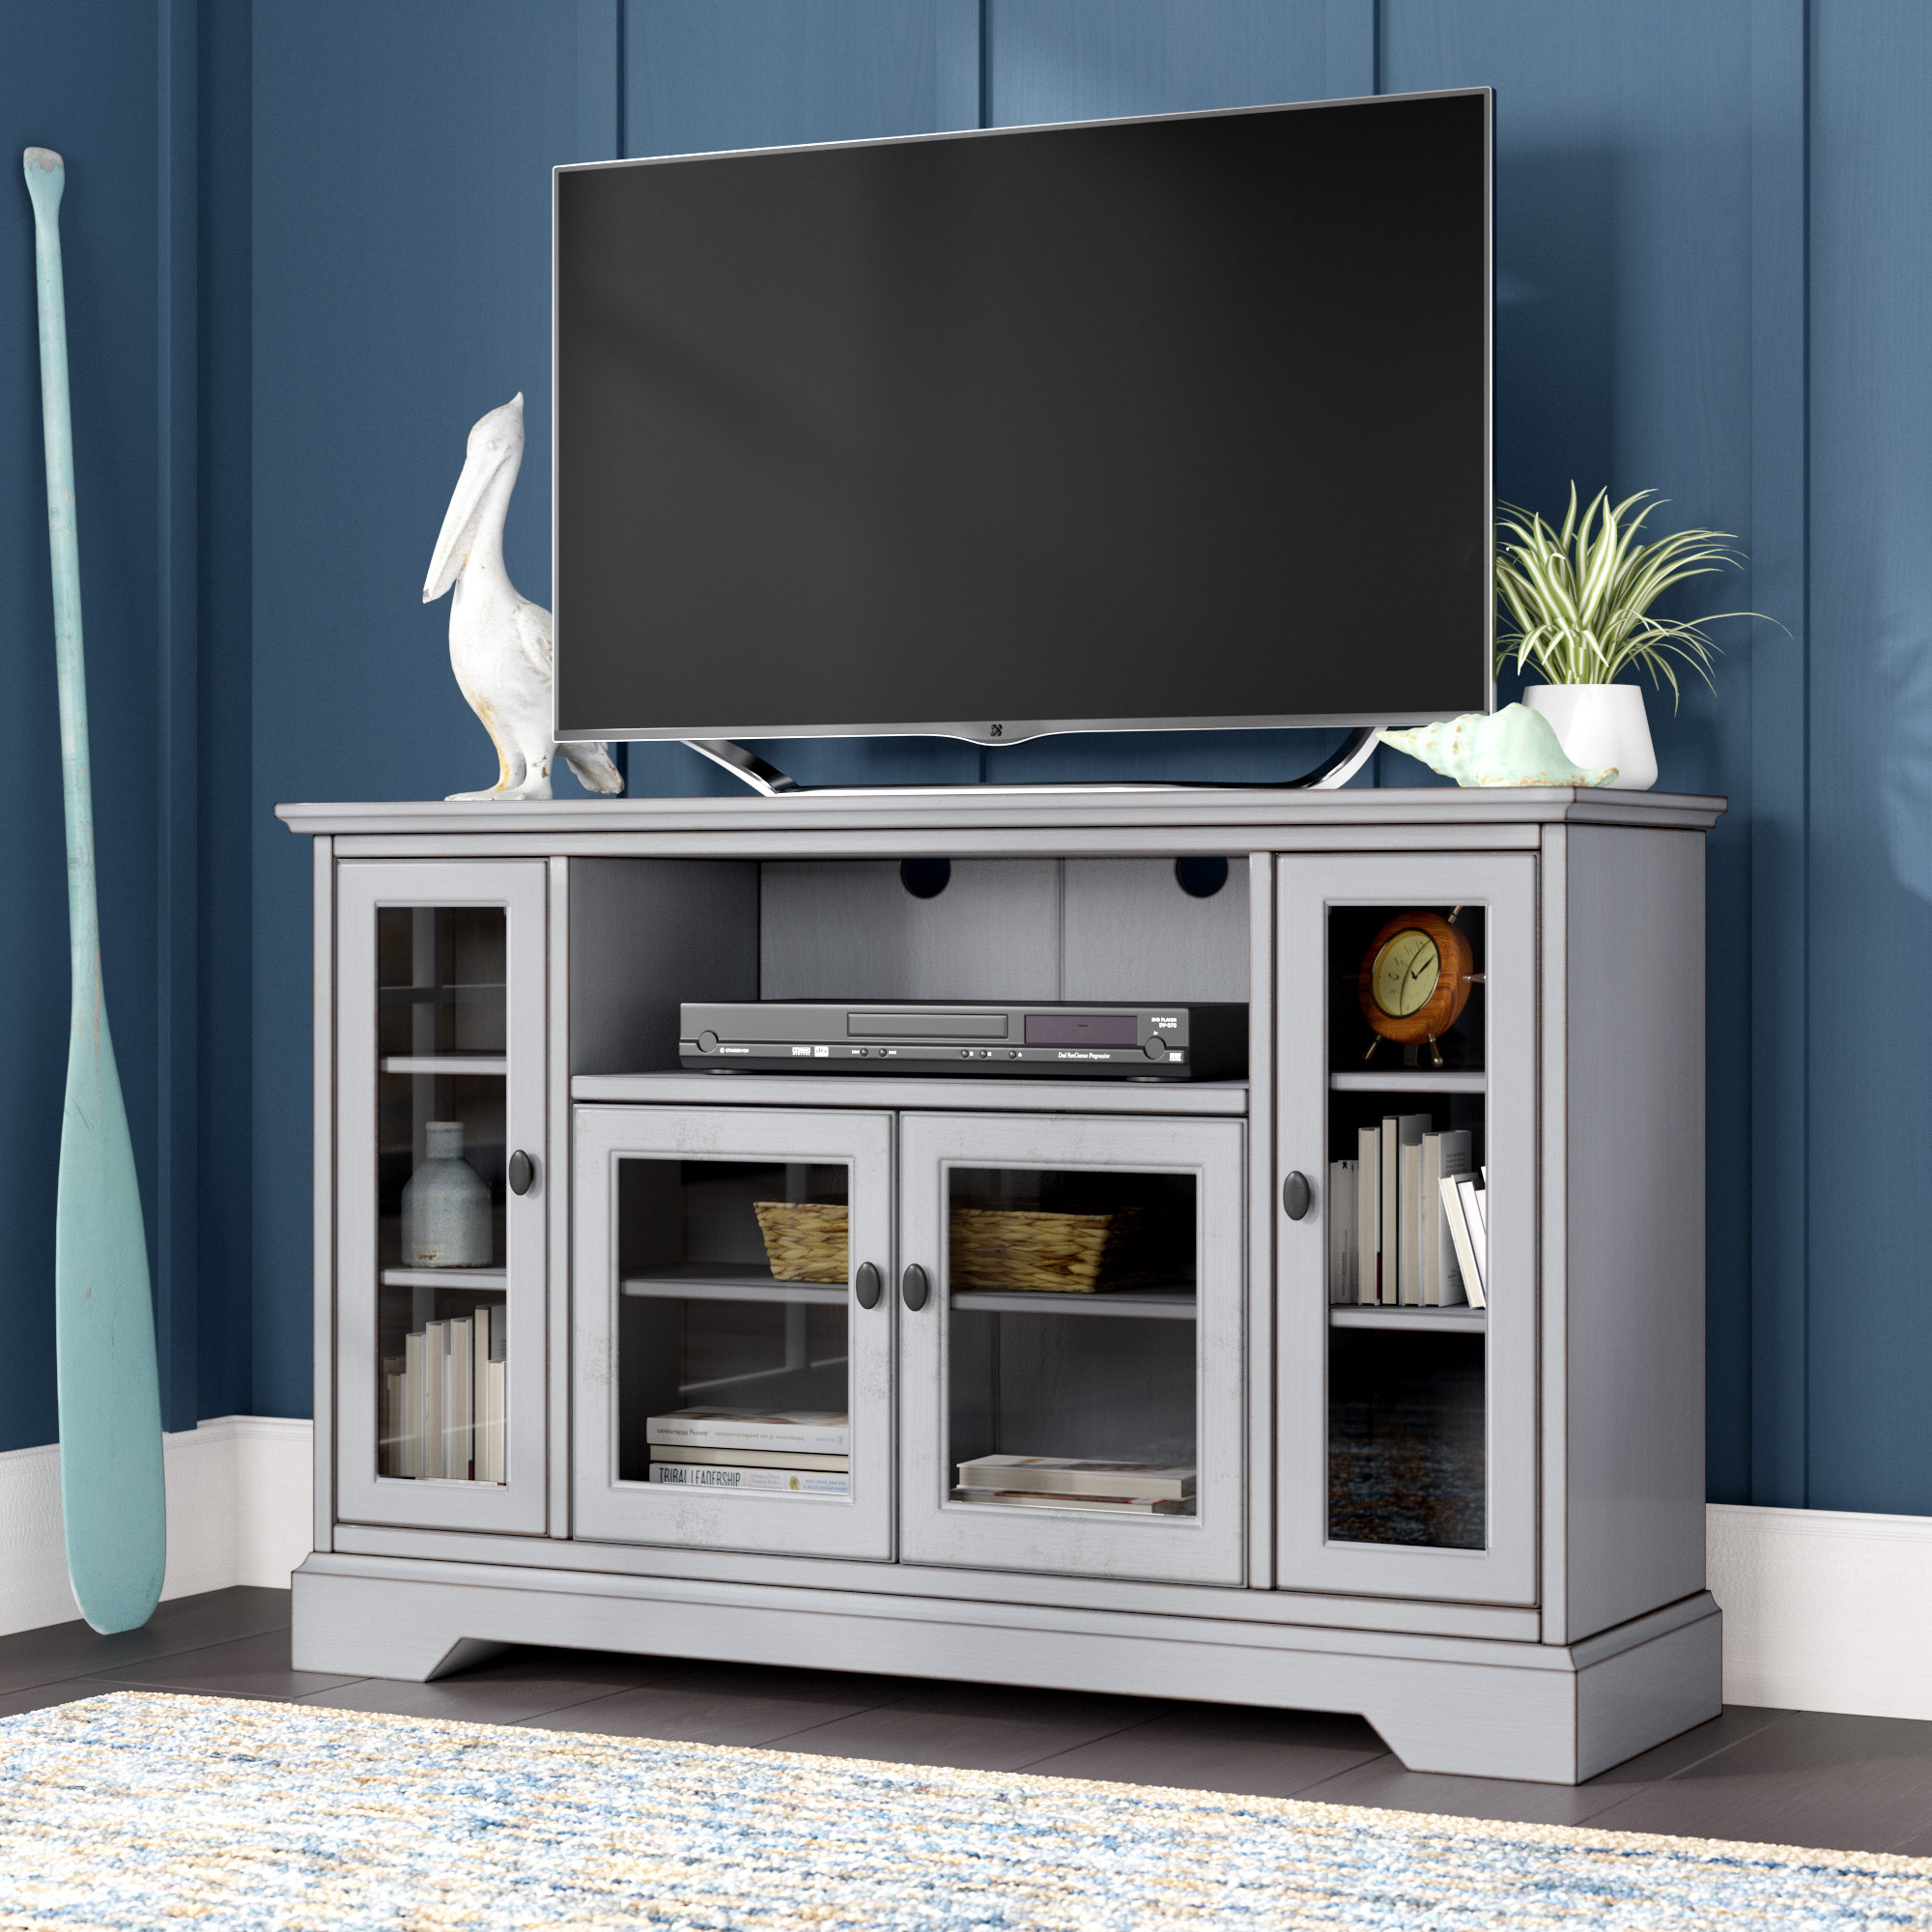 Tv Stands & Entertainment Centers You'll Love | Wayfair With Regard To Sinclair Blue 64 Inch Tv Stands (View 23 of 30)